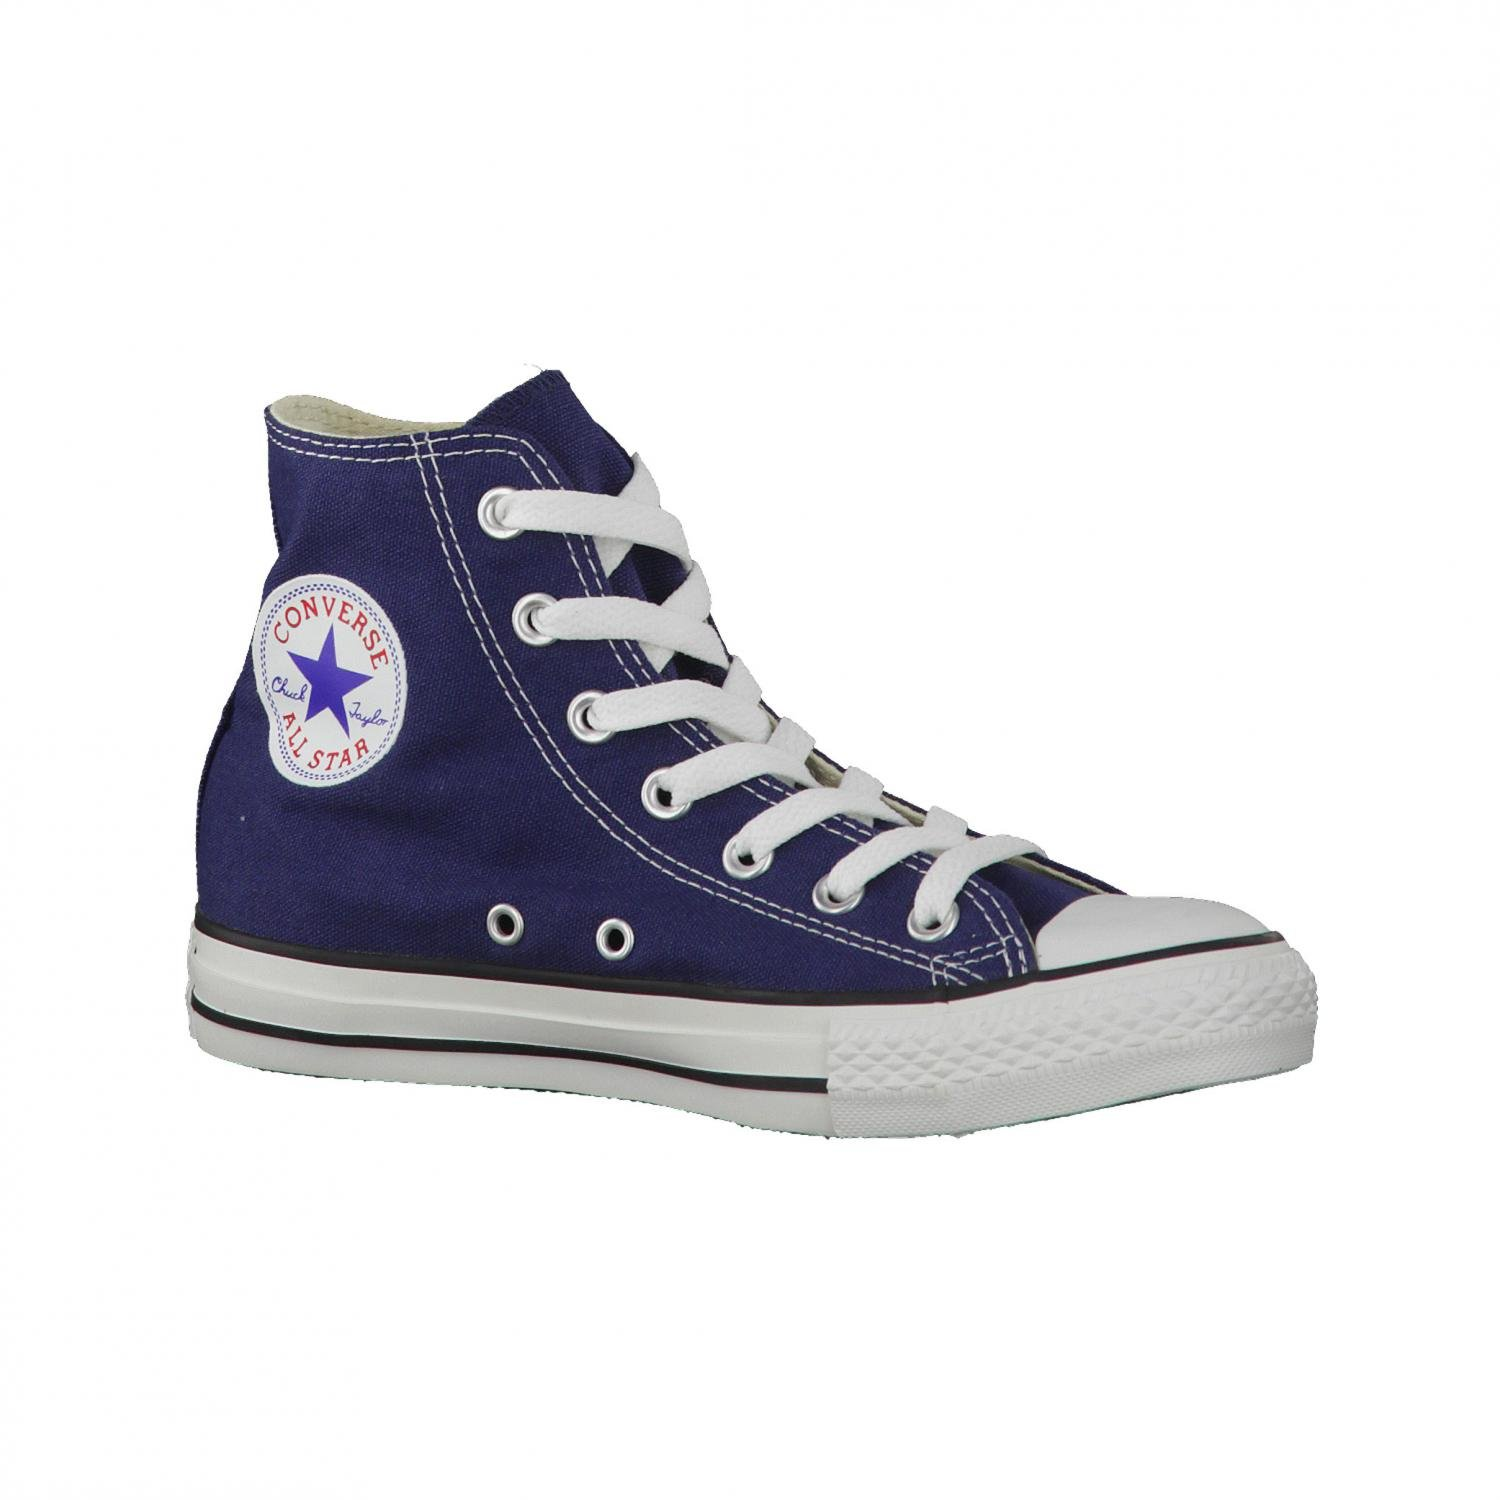 Converse Shoes All Star Hi Top Navy Blue Men Size 10.5 Sneakers M9622